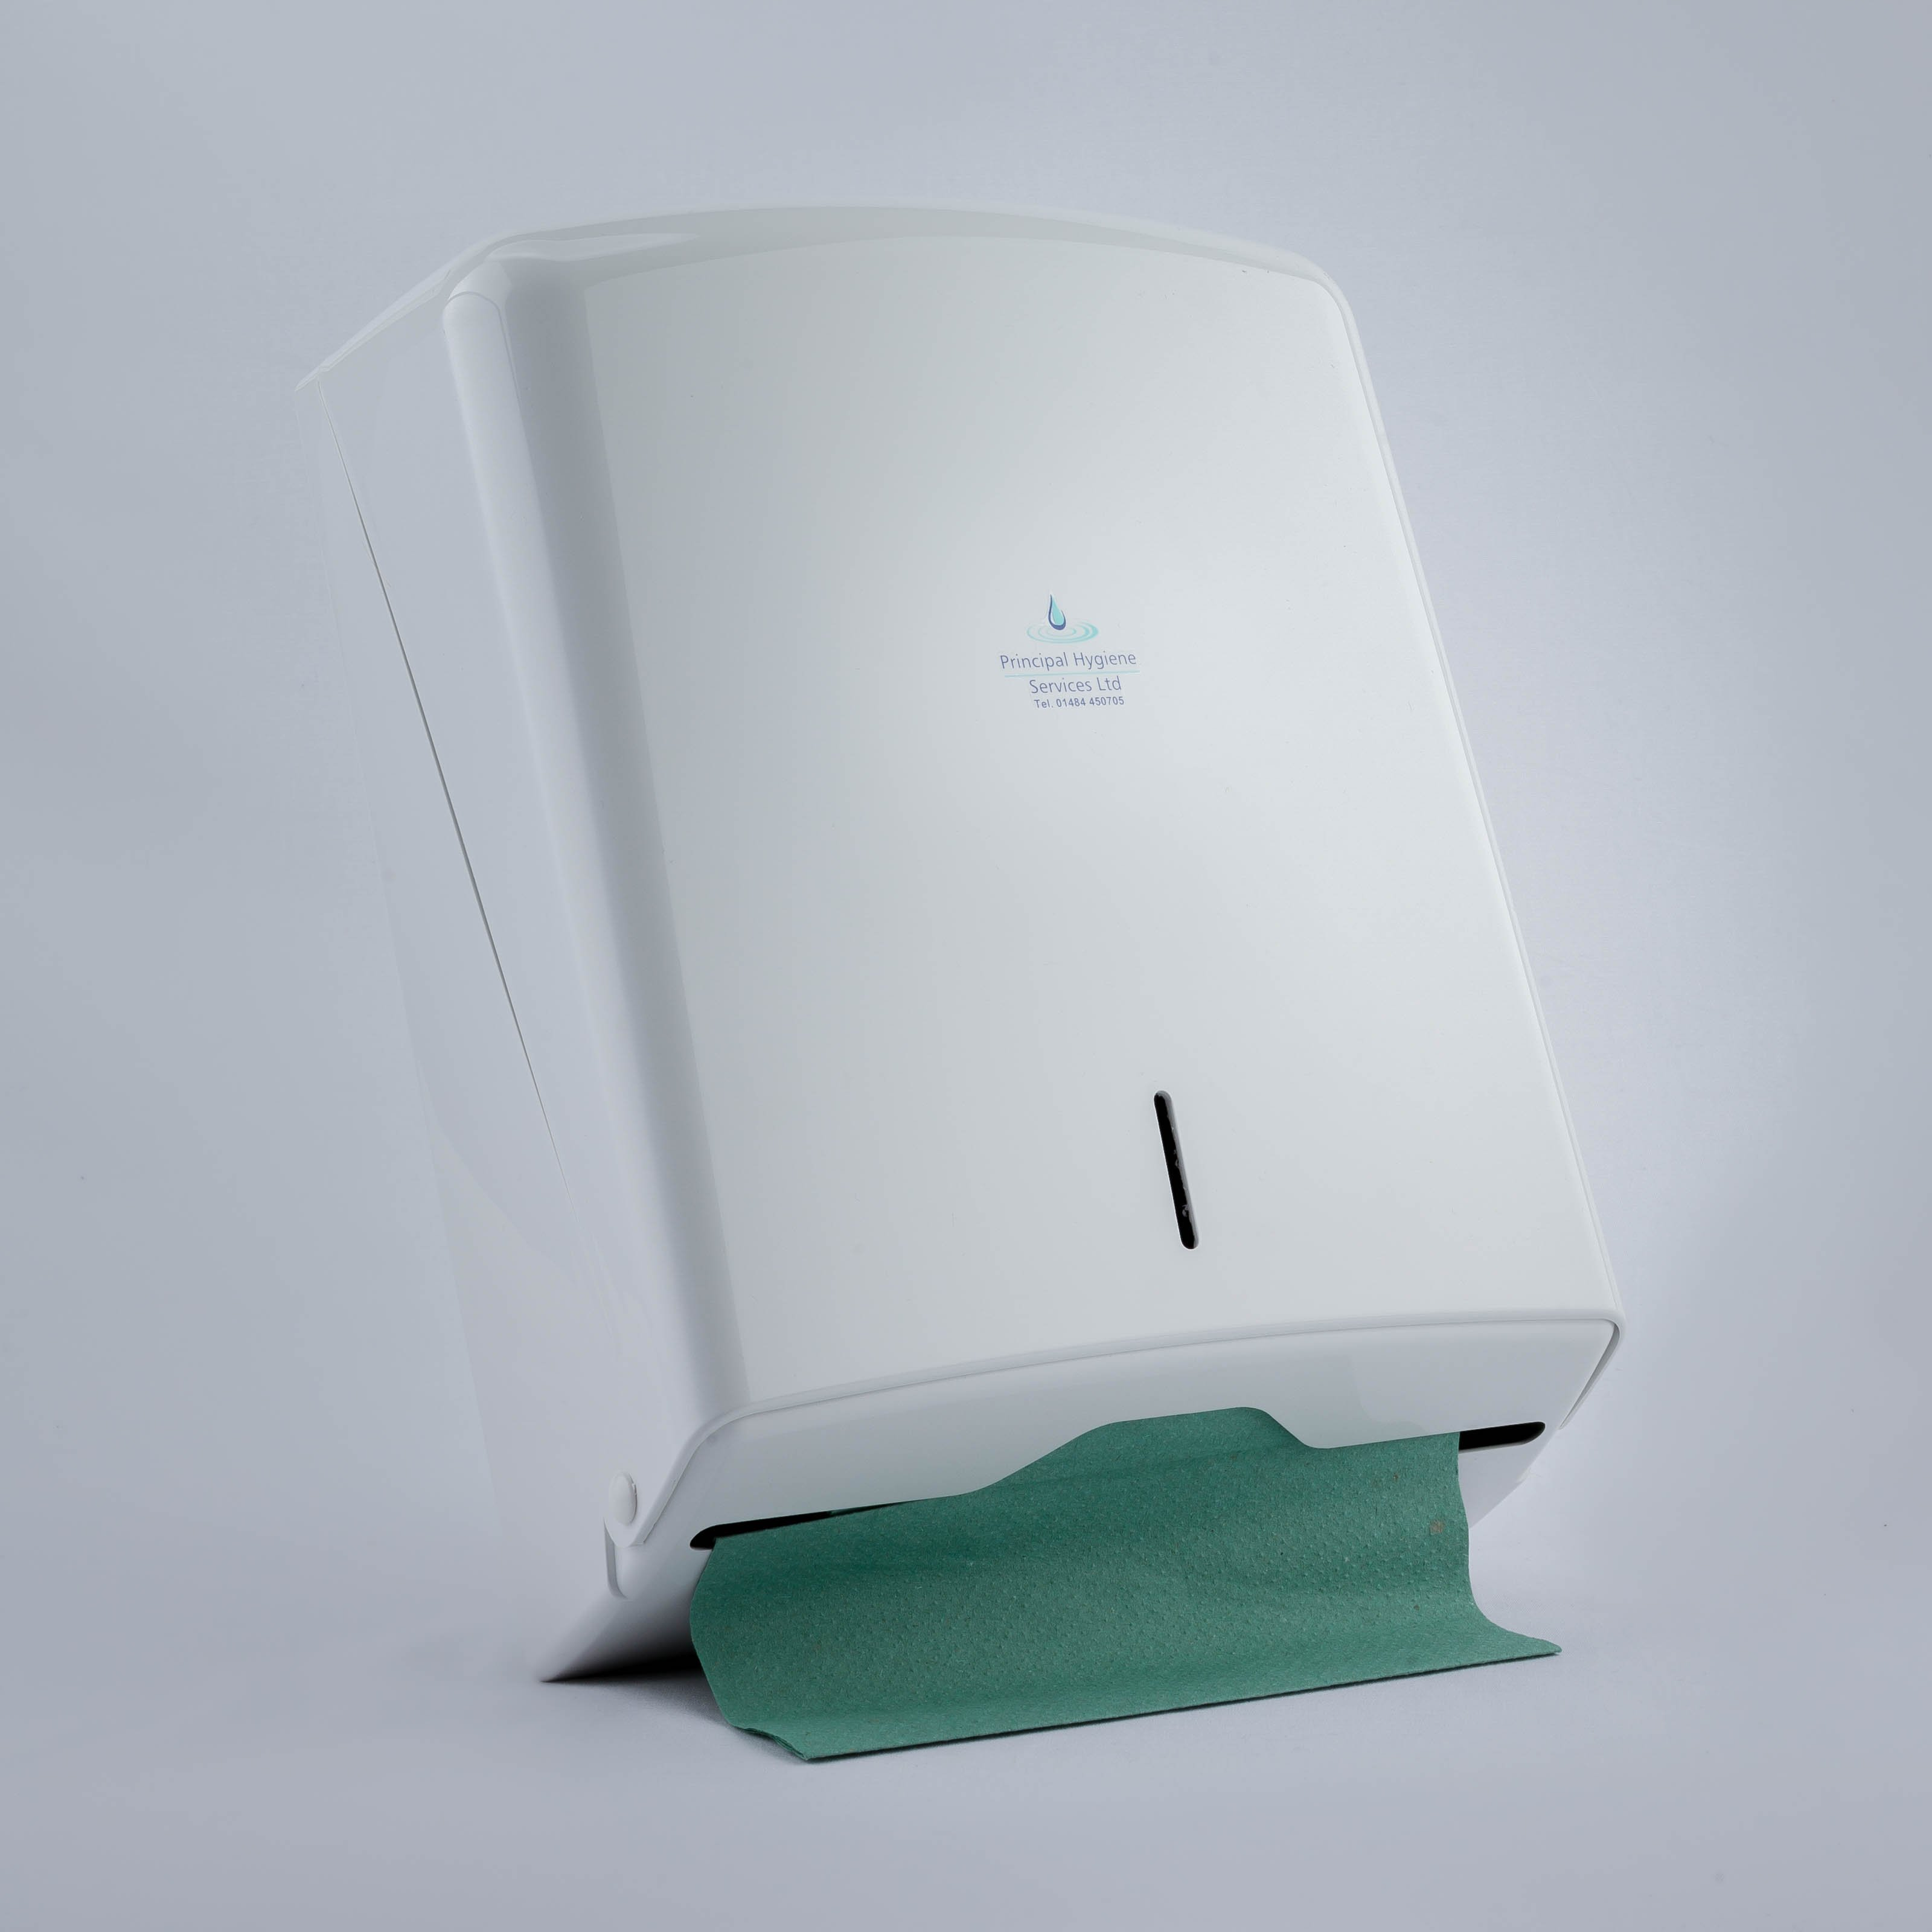 quality sanitary disposal products